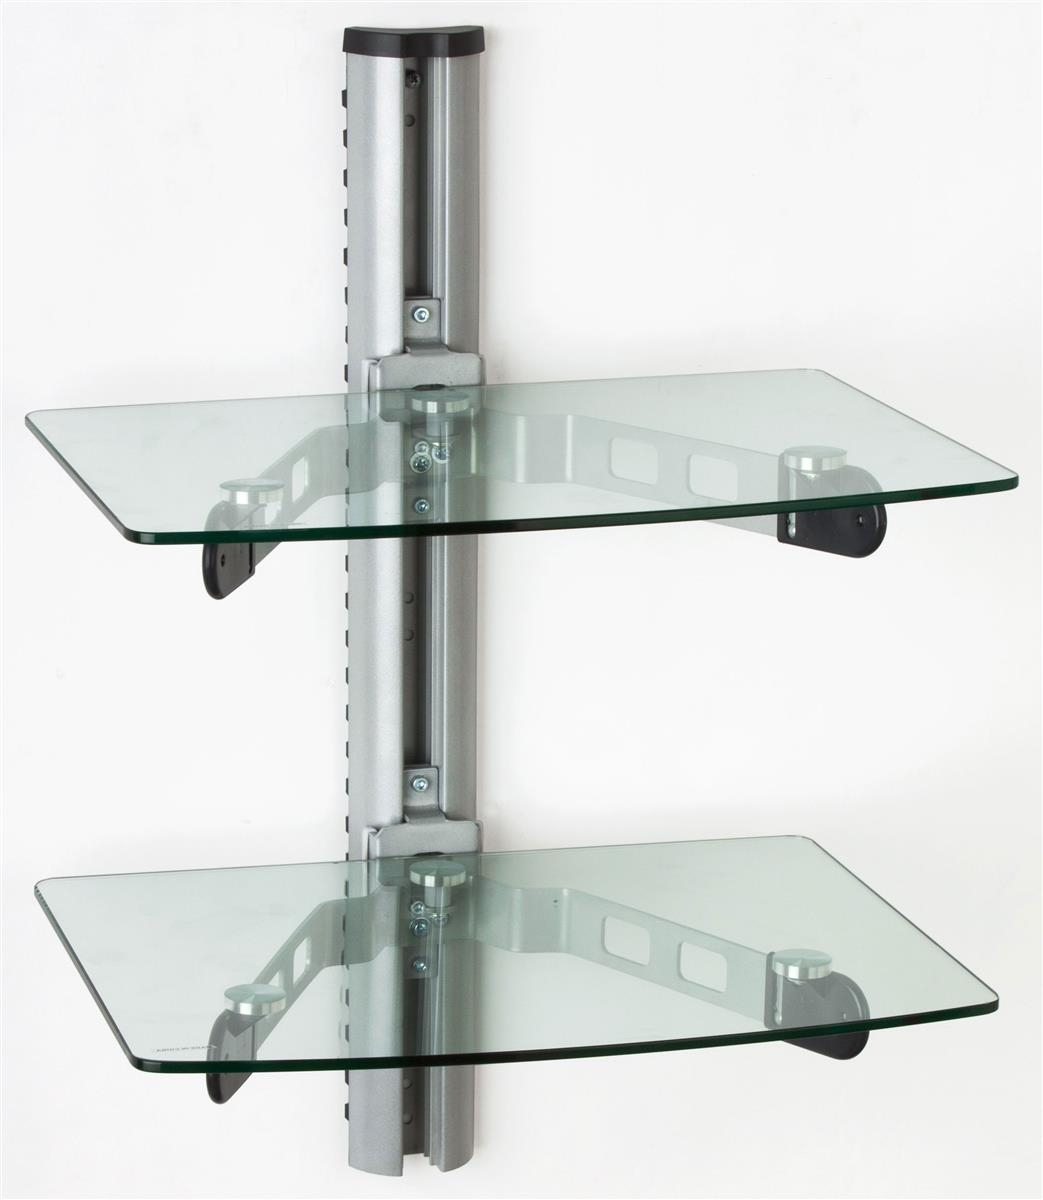 Wall Mounted Glass Shelves Av Component Stand Pertaining To Wall Mounted Black Glass Shelves (View 13 of 15)